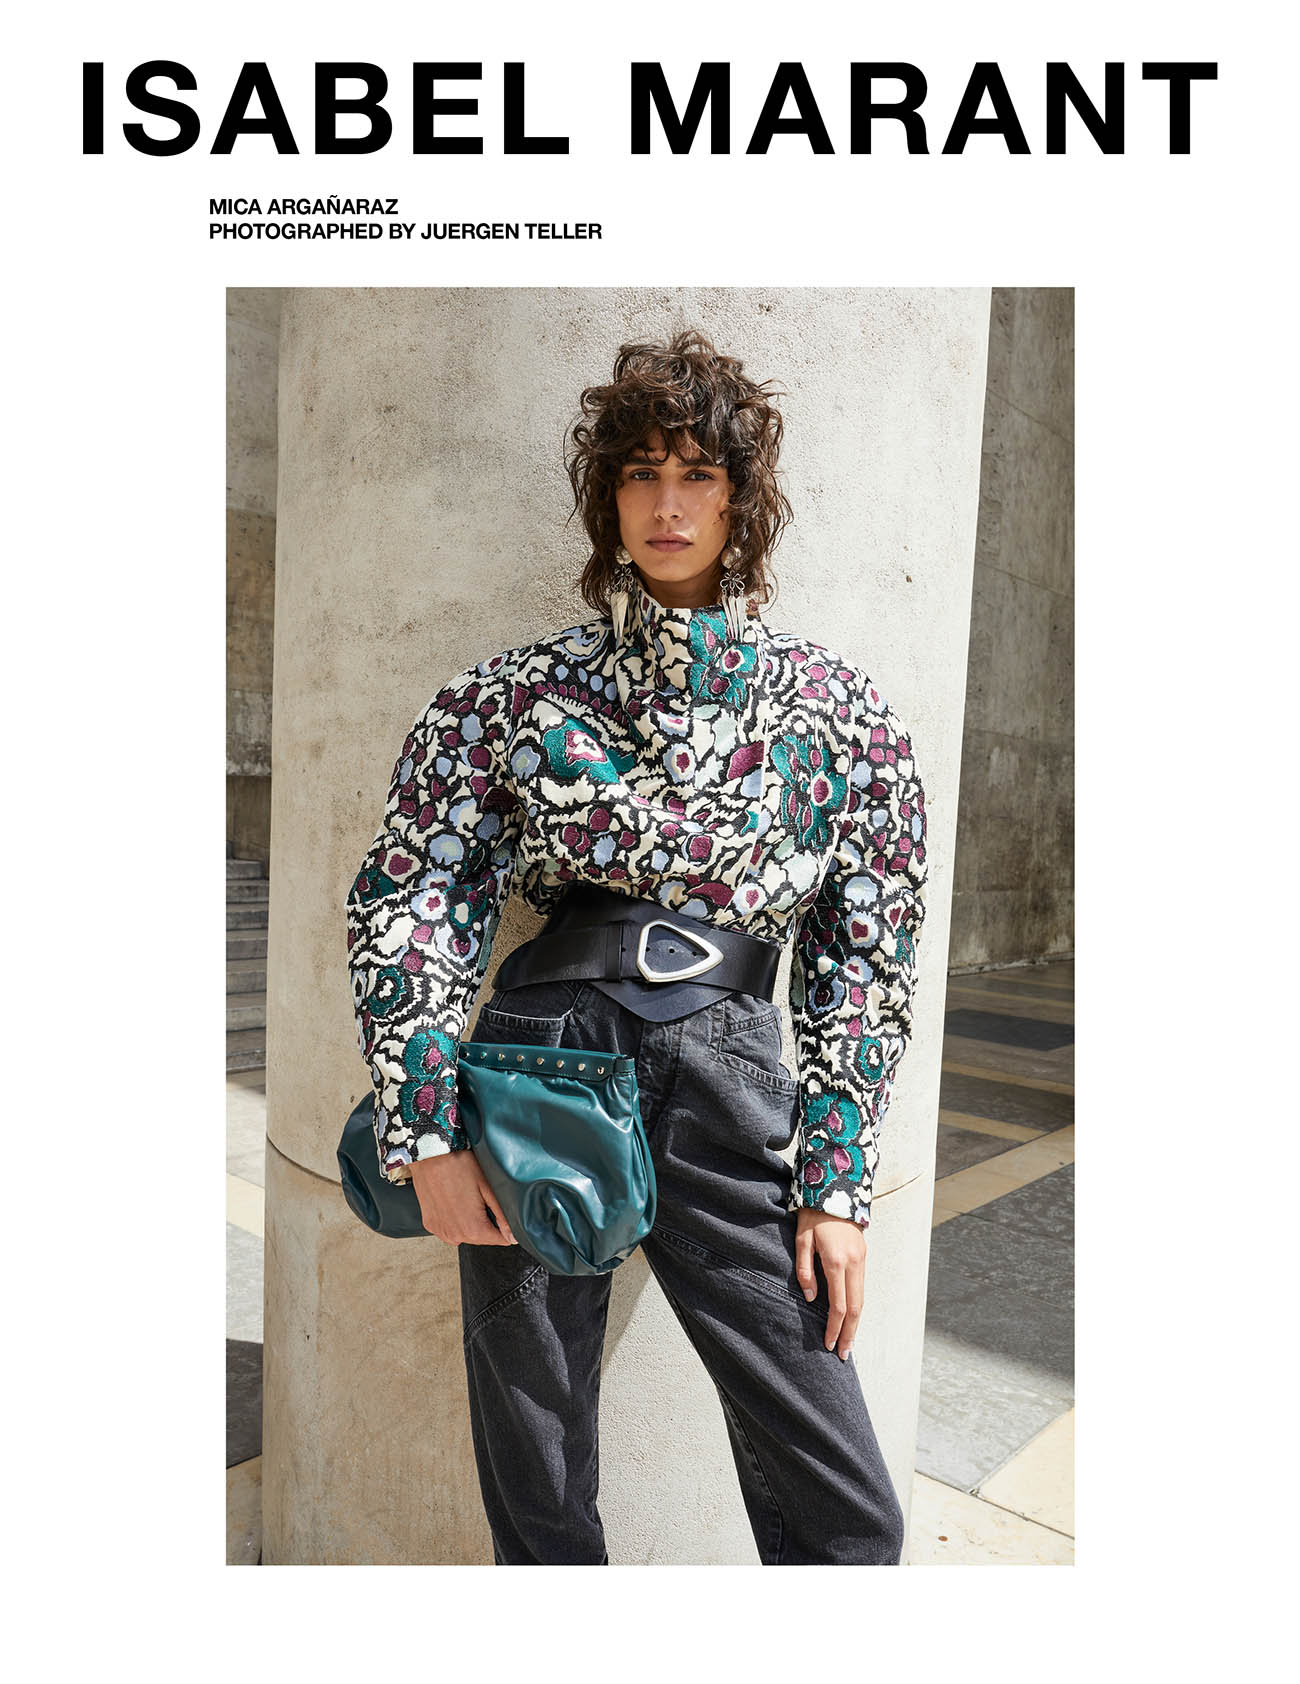 Isabel Marant Fall Winter 2020 Campaign